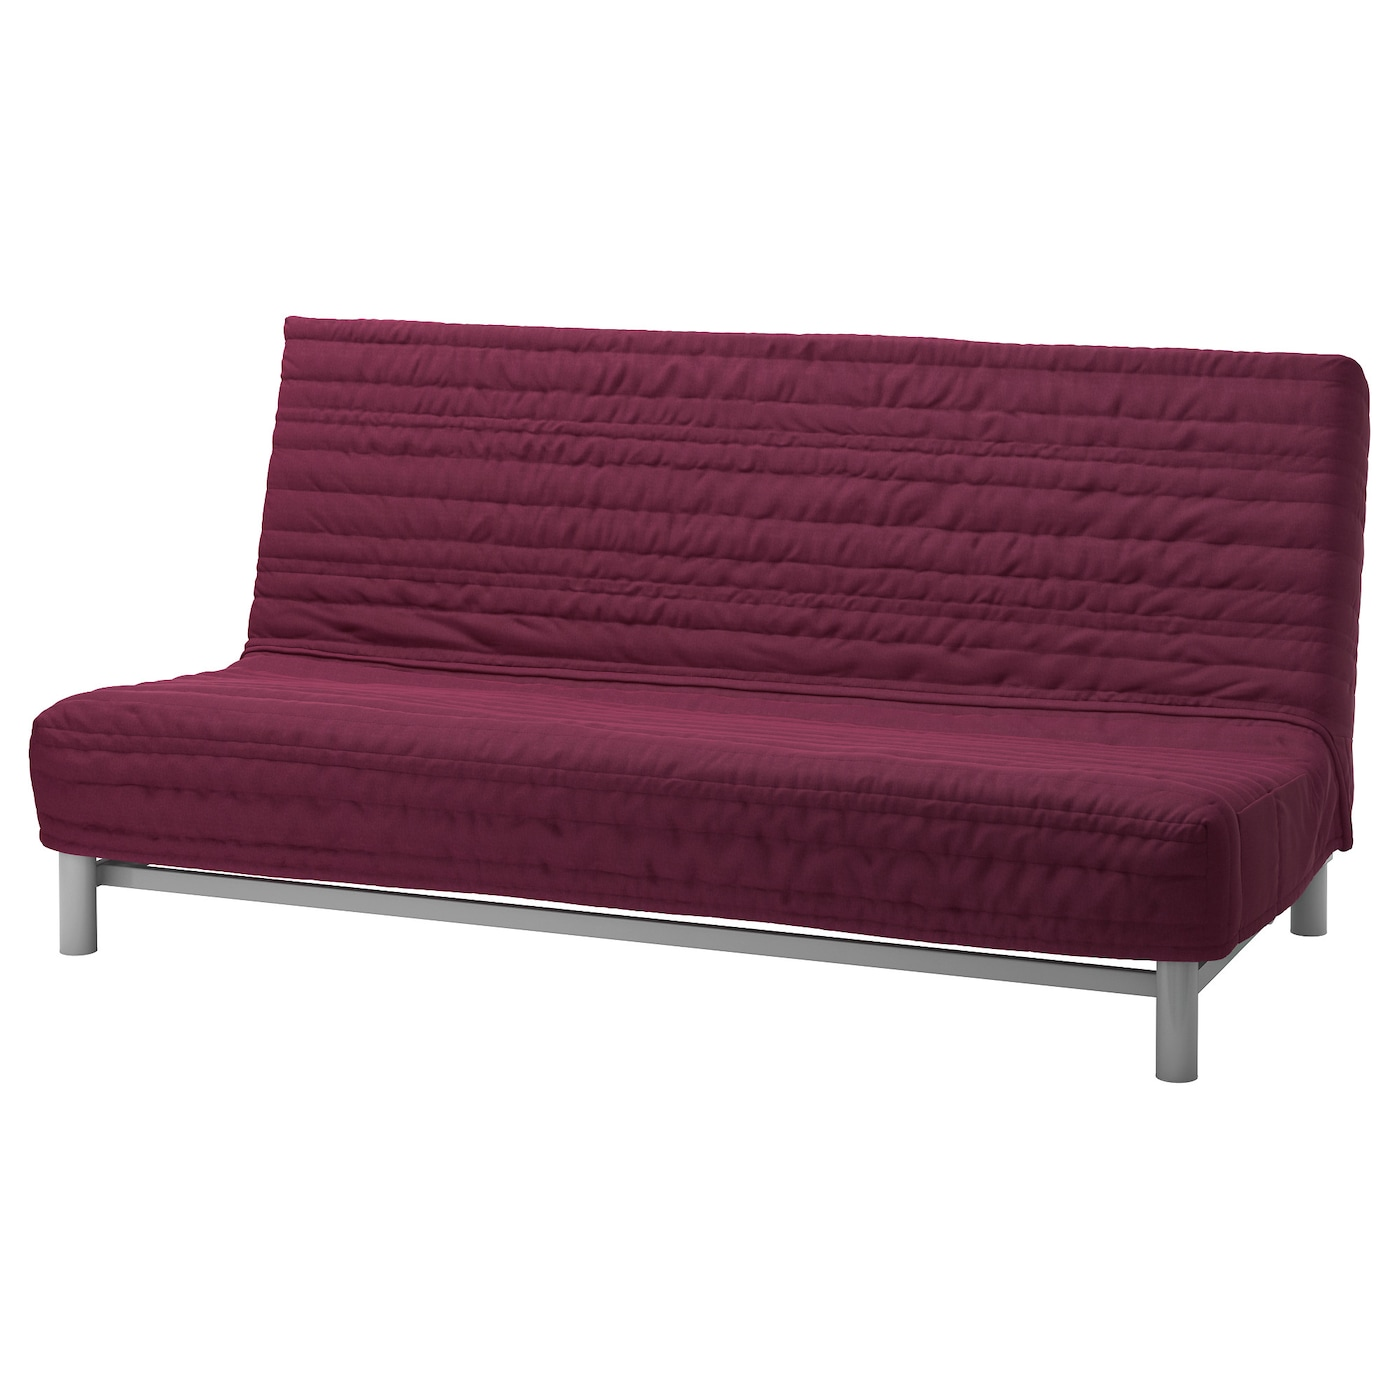 BEDDINGE LÖVÅS Three seat sofa bed Knisa cerise IKEA